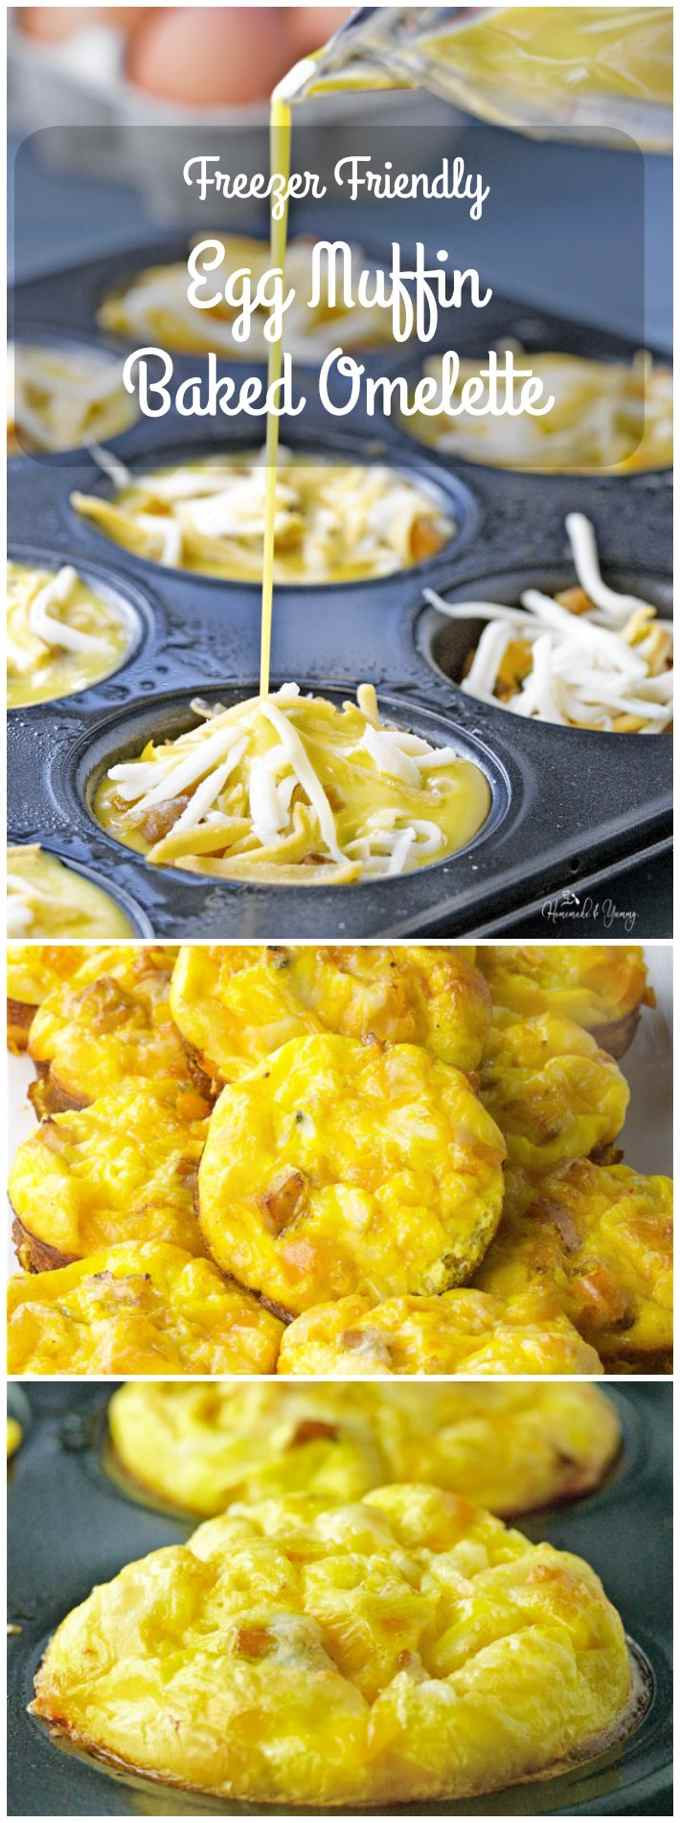 Freezer Friendly Egg Muffin Baked Omelette is great for breakfast, brunch or dinner. An easy way to feed a crowd. Freezer friendly means less work on busy days. | homemadeandyummy.com